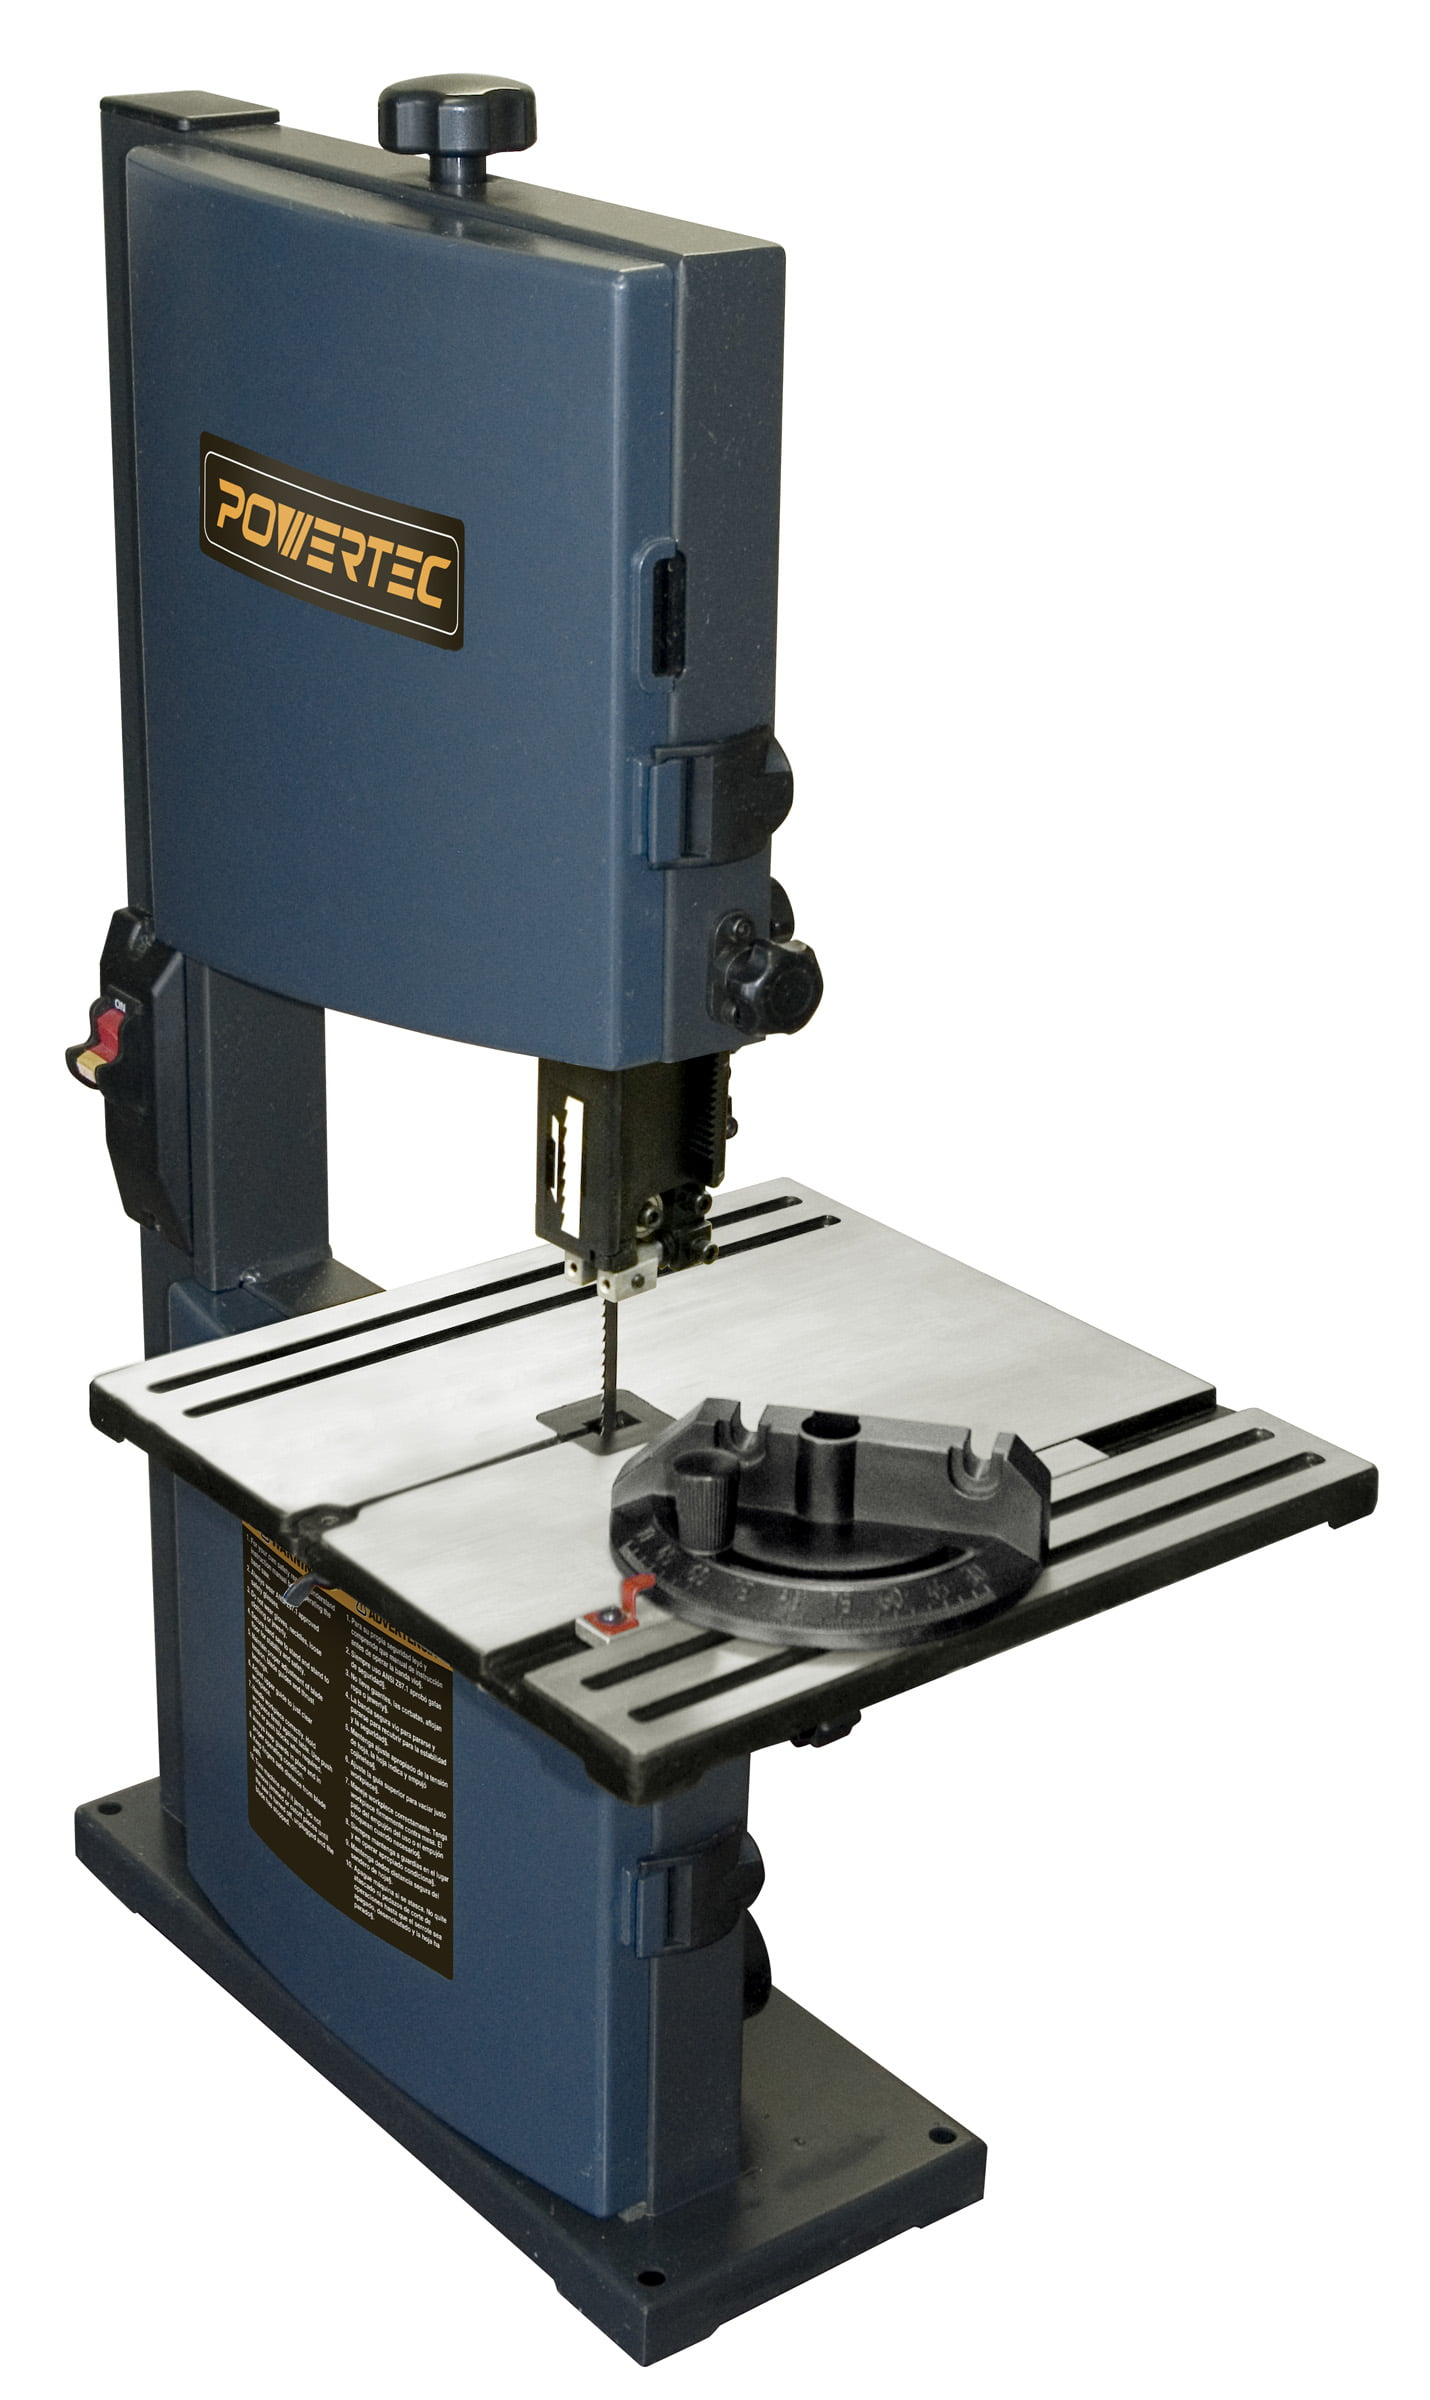 POWERTEC BS900 9-Inch Band Saw by Southern Technologies LLC